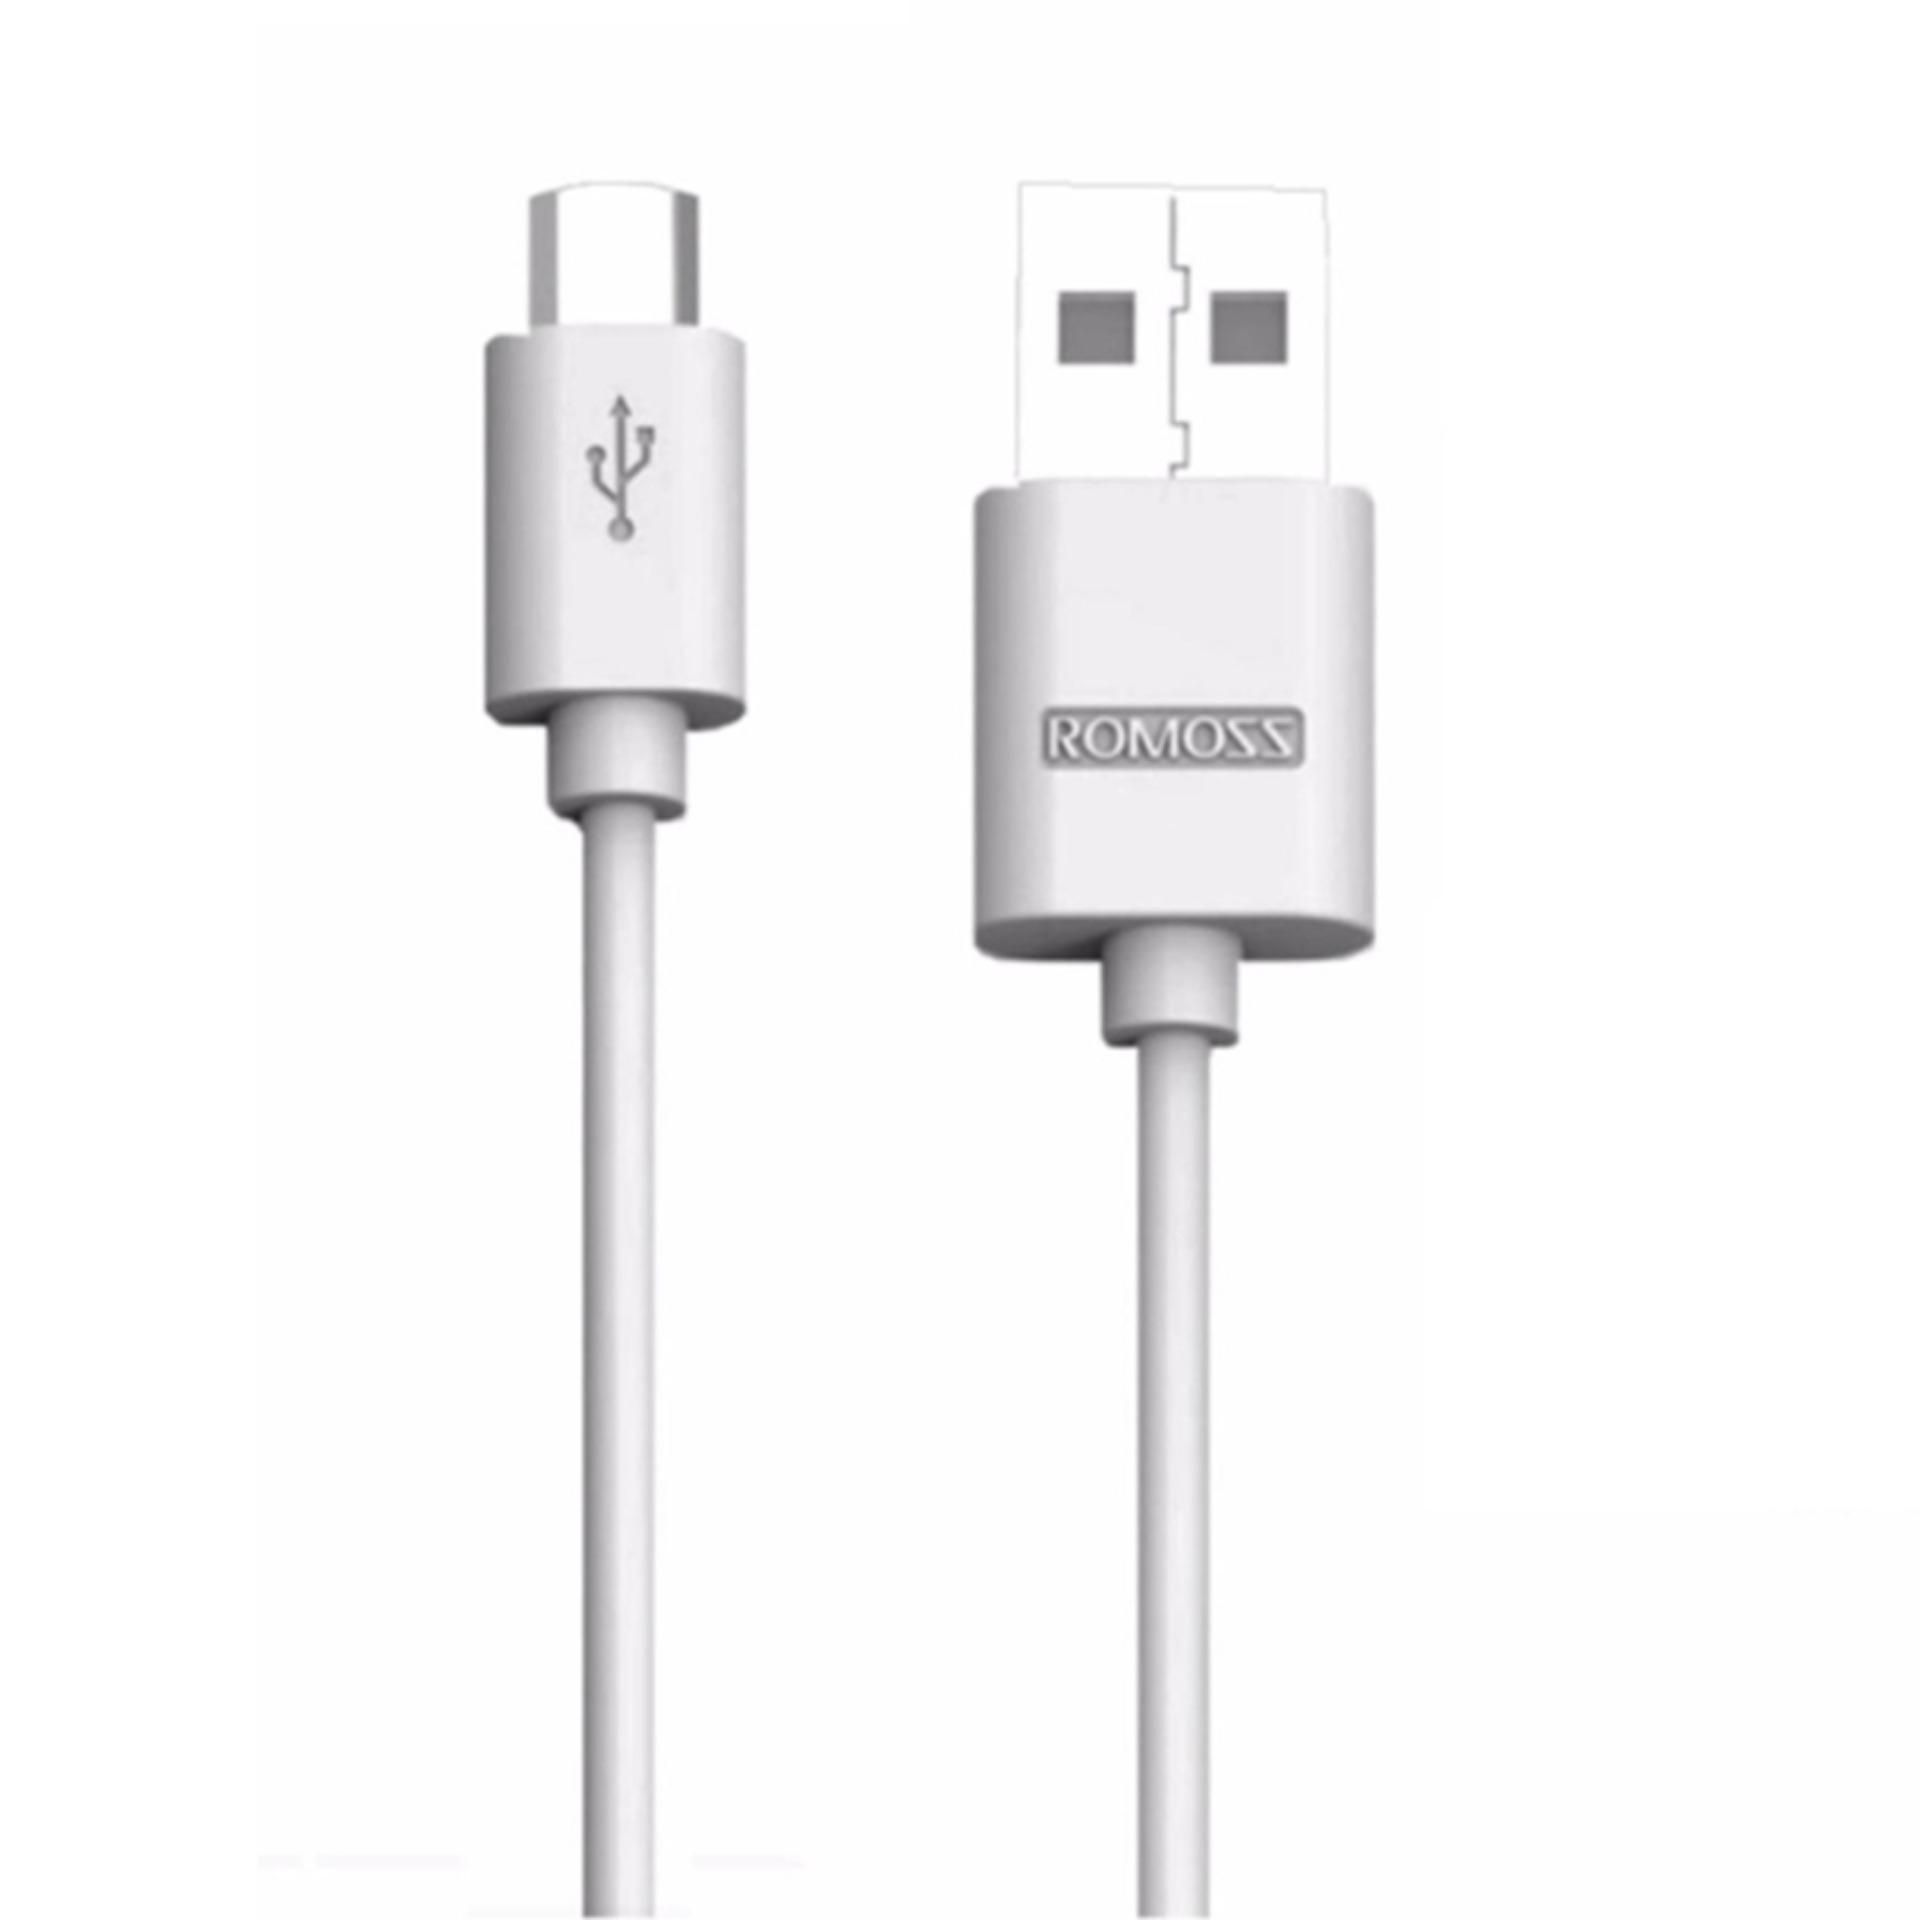 Phone Cables For Sale Connectors Prices Brands Specs In Micro Usb Charger Wiring Romoss Cb05 1m Data Sync Charging Cable Android Smartphones White